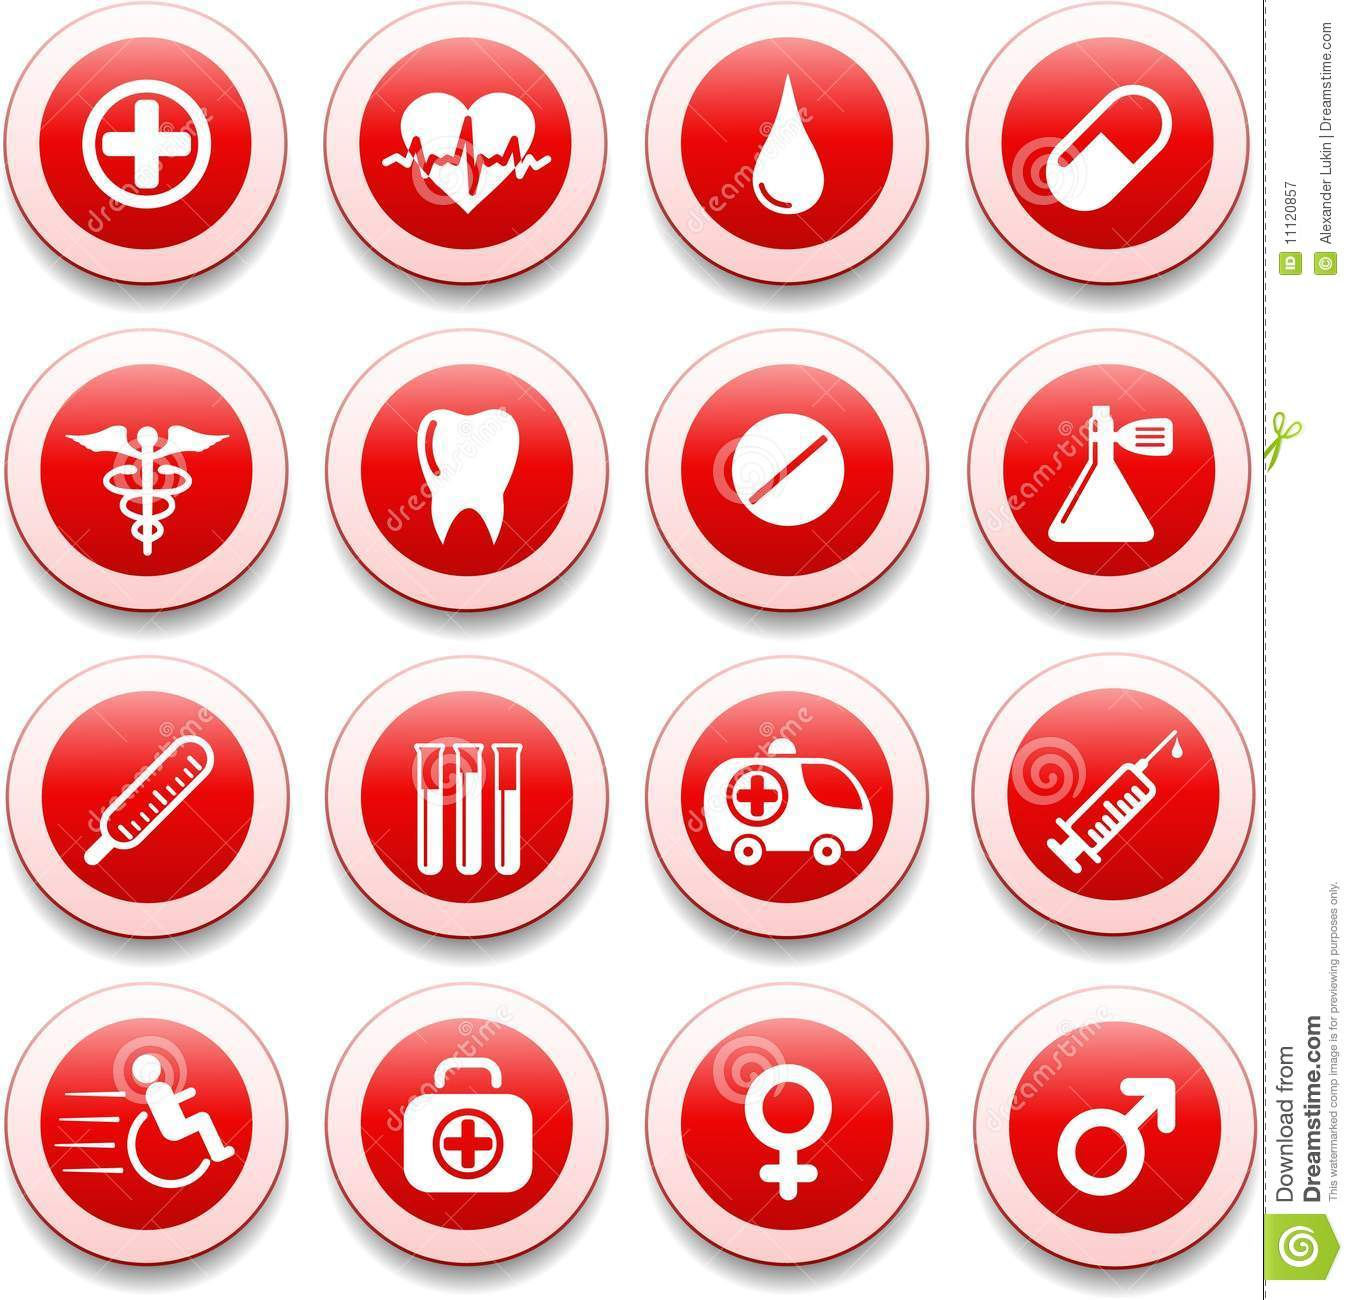 Medical Icons Royalty Free Stock Photography - Image: 11120857